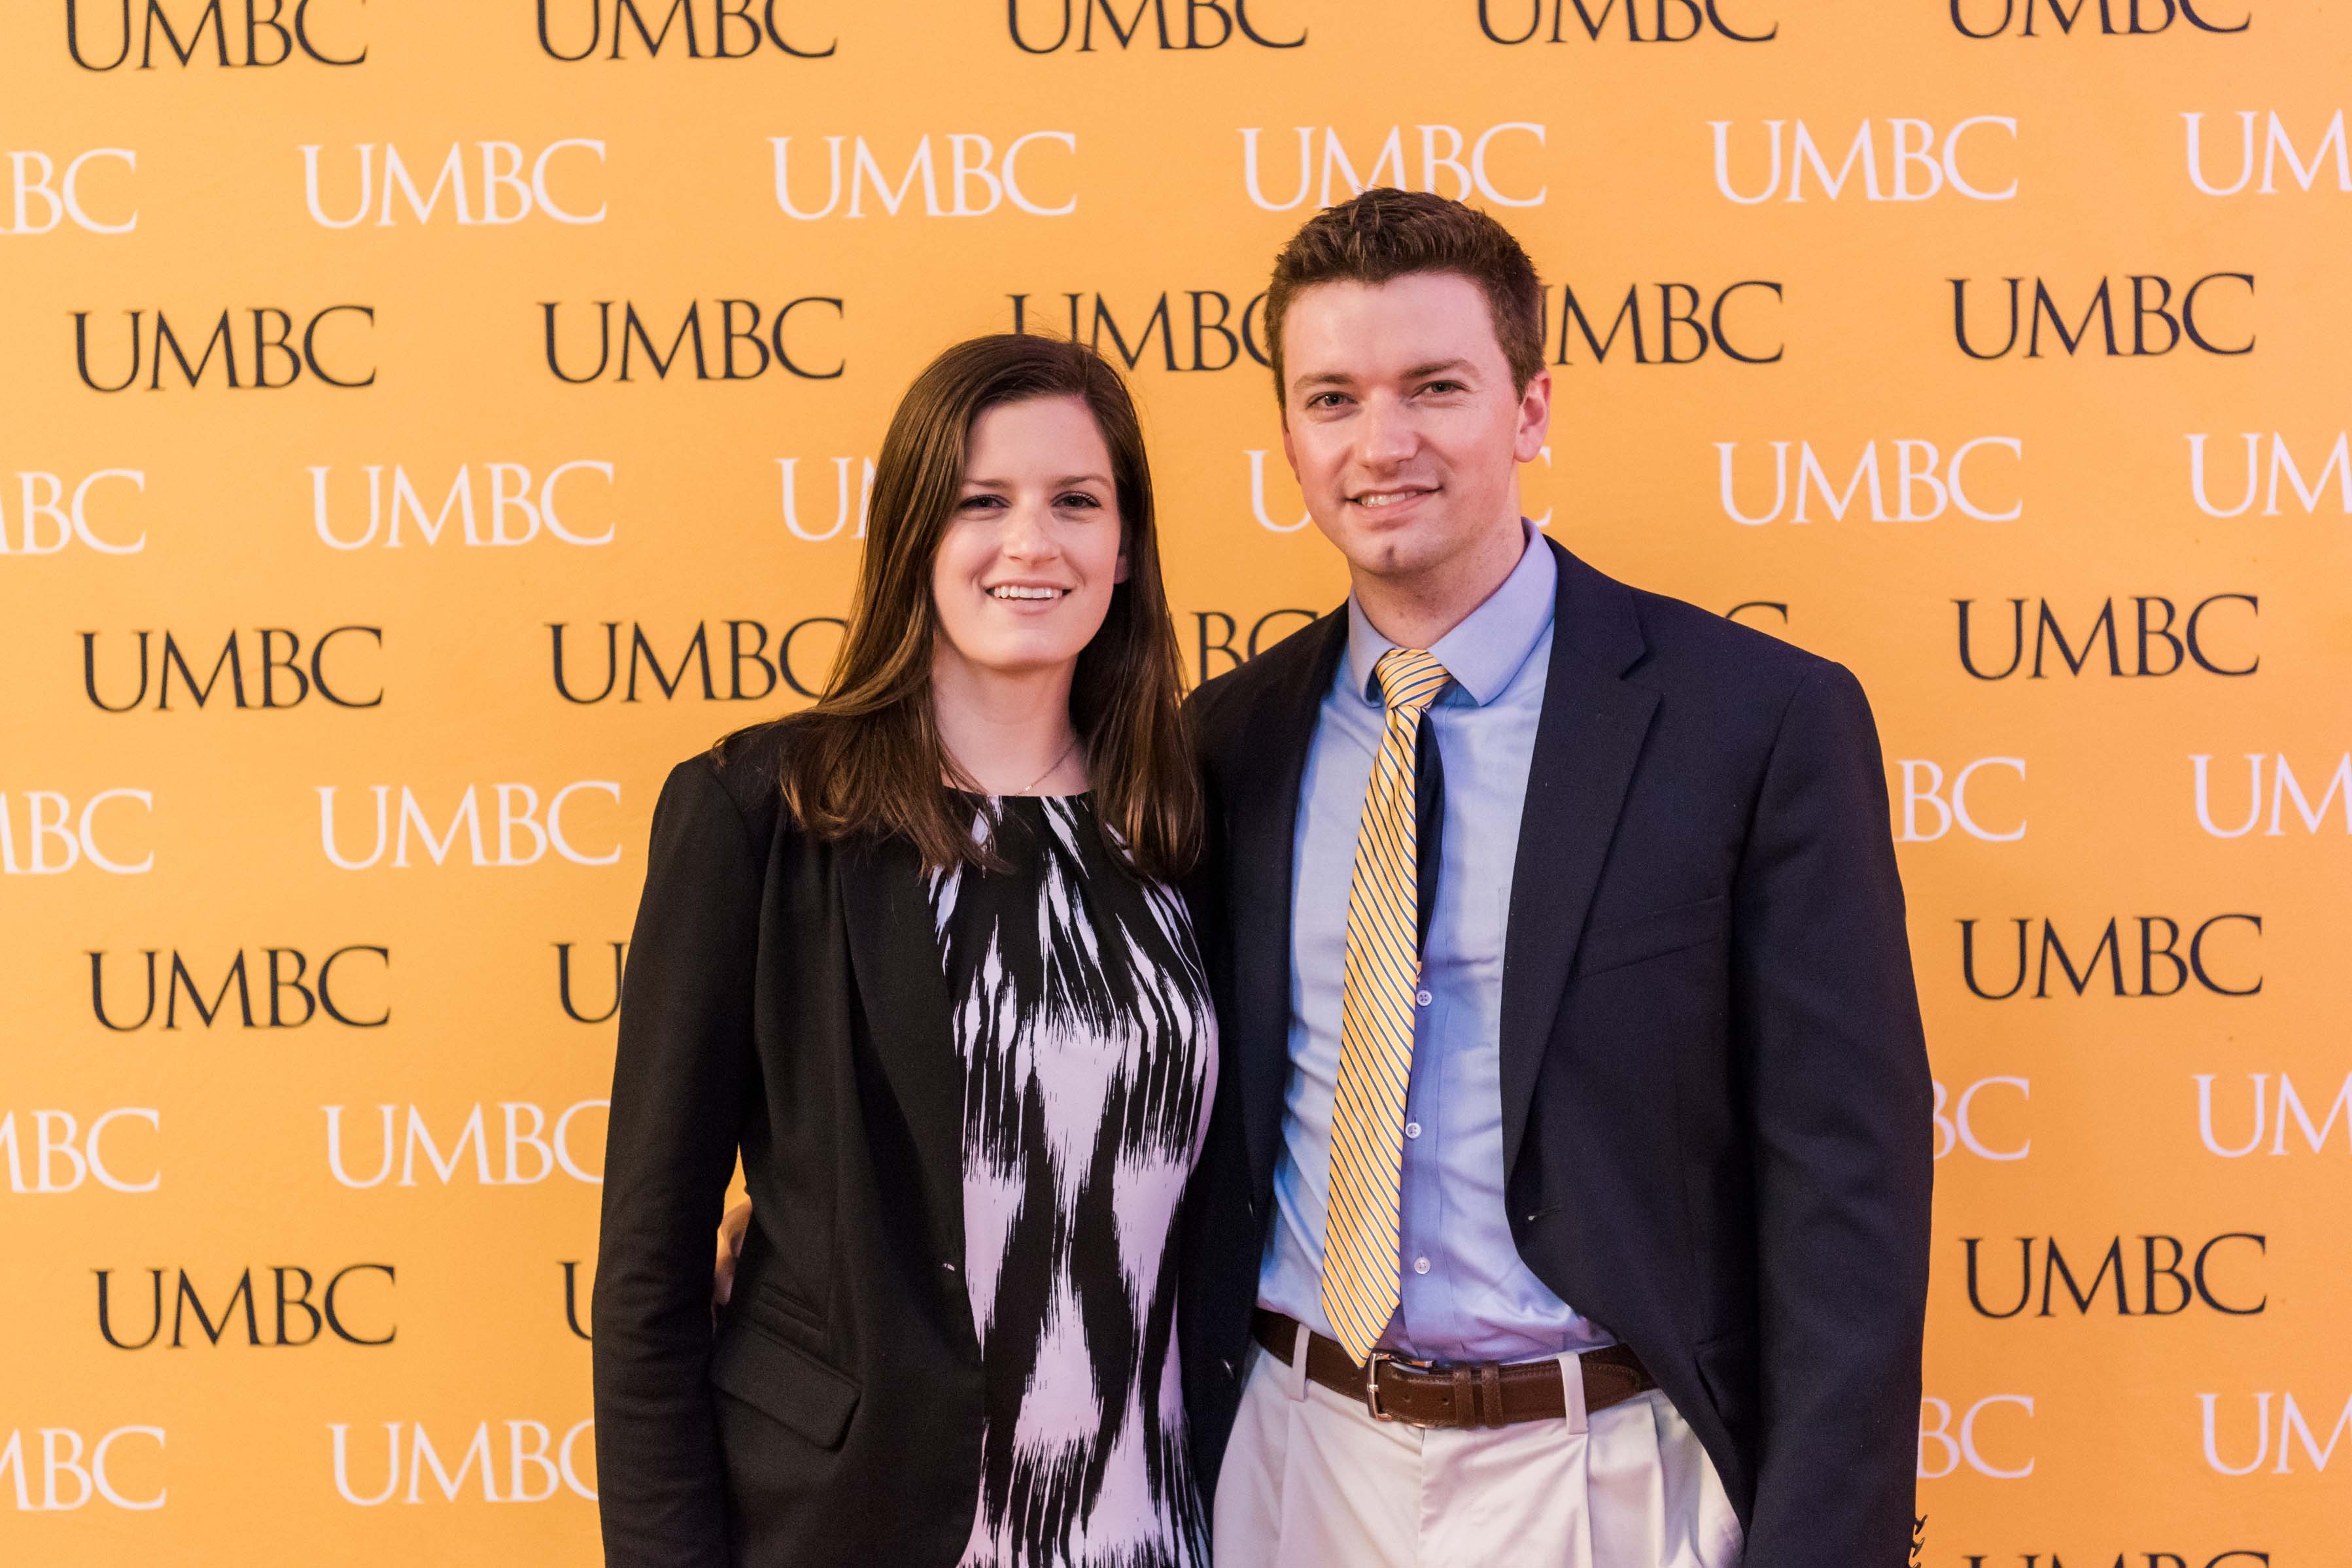 Man and woman pose with UMBC wall